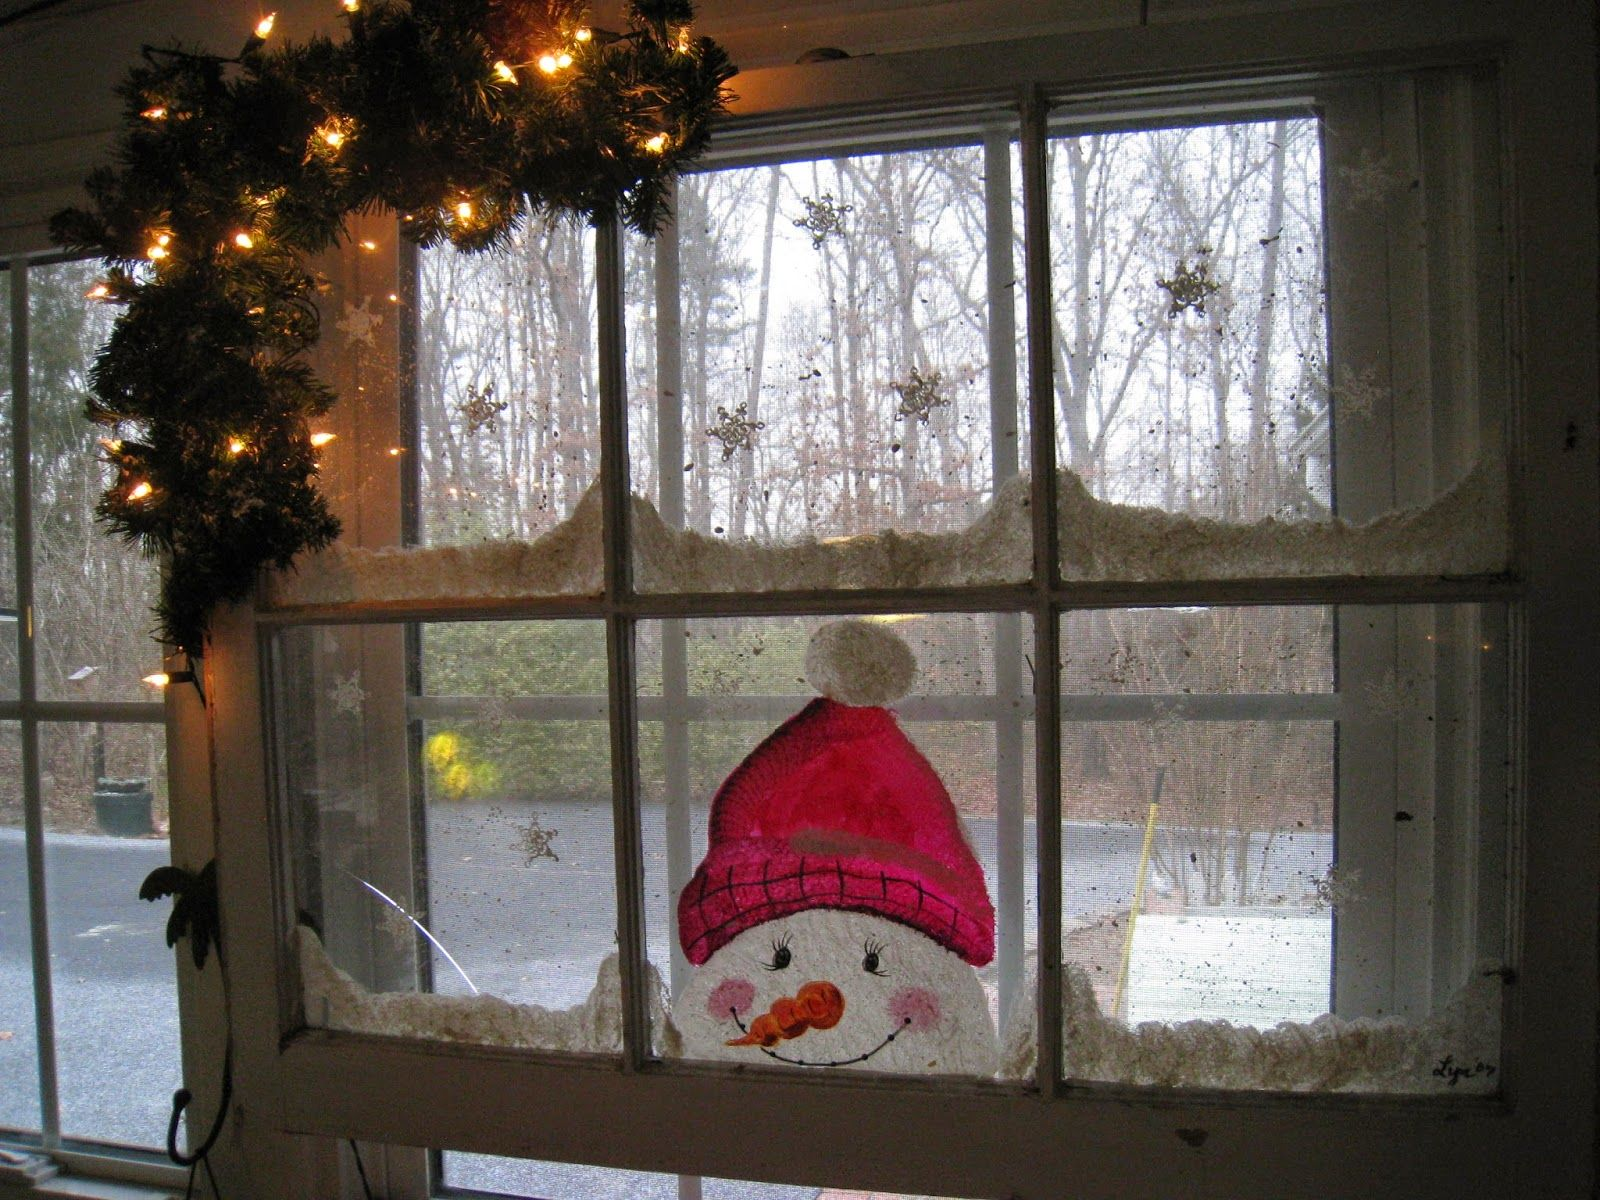 Repurposed For Life Things To Do With Old Glass Windows Part 1 Window Crafts Christmas Window Decorations Christmas Window Painting